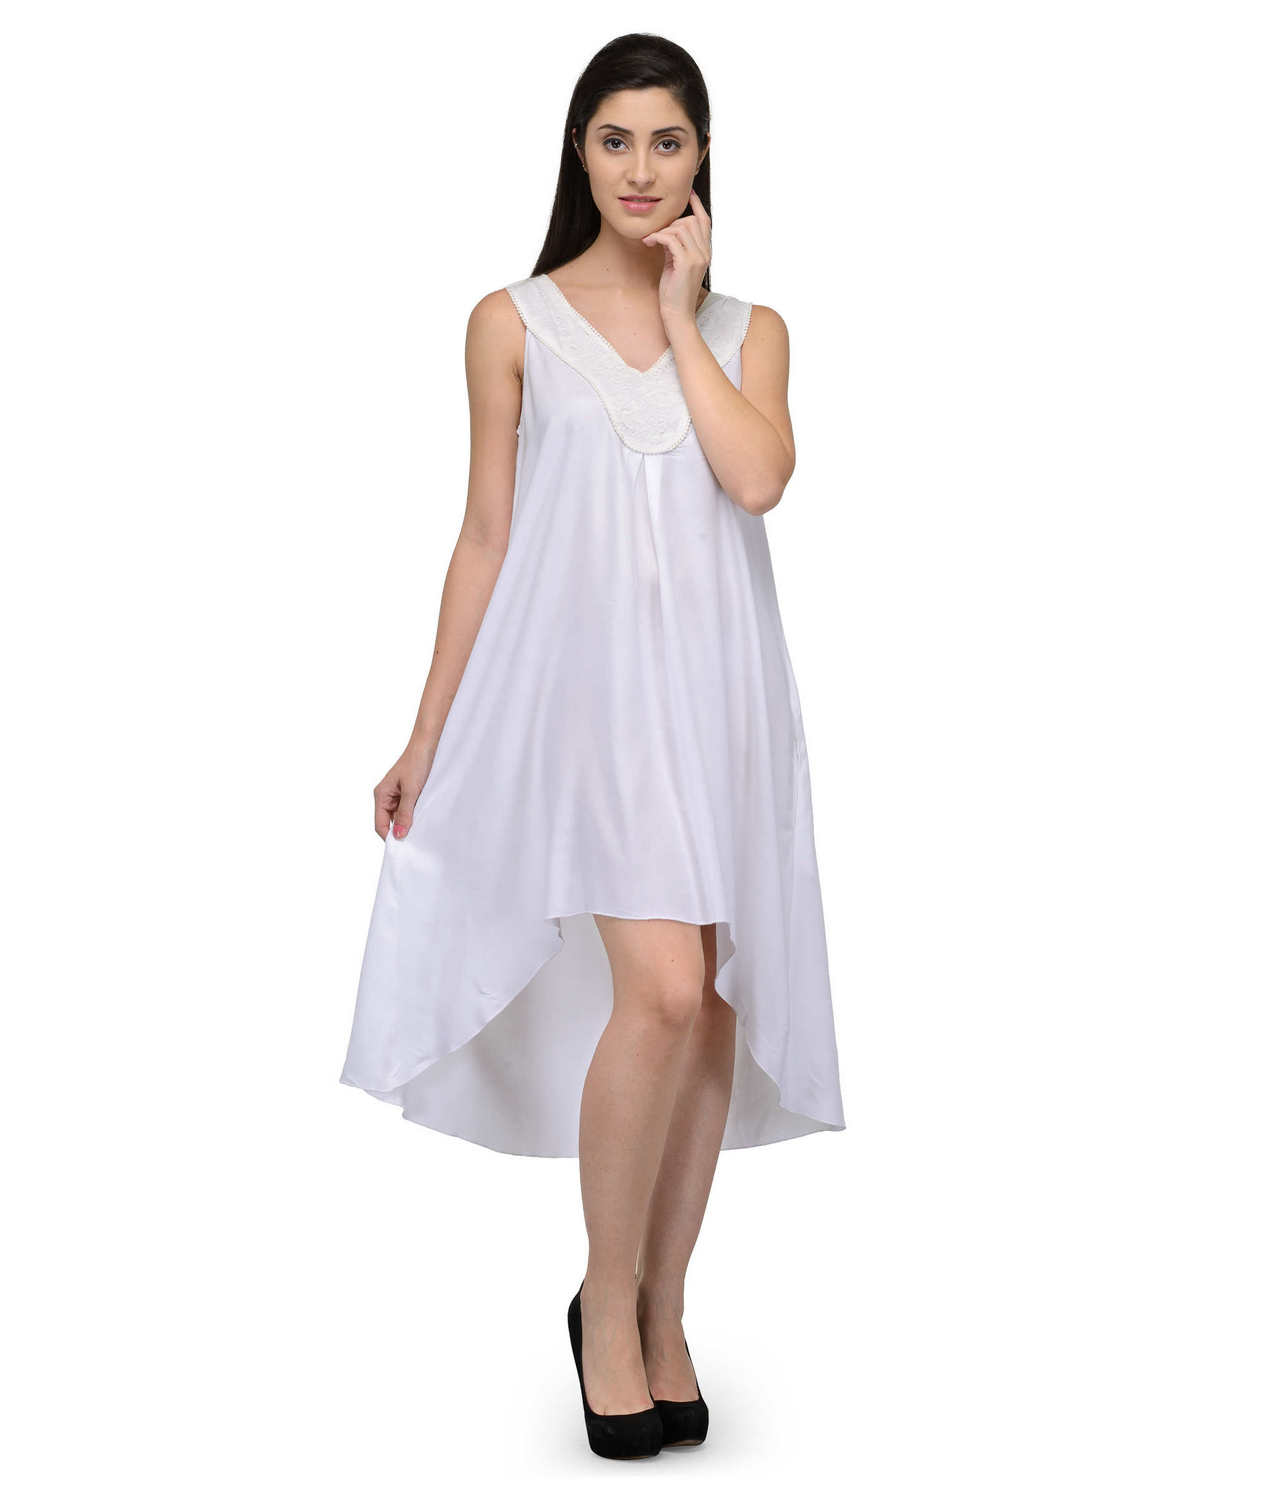 Fit & Flare Knee Length Dress in White